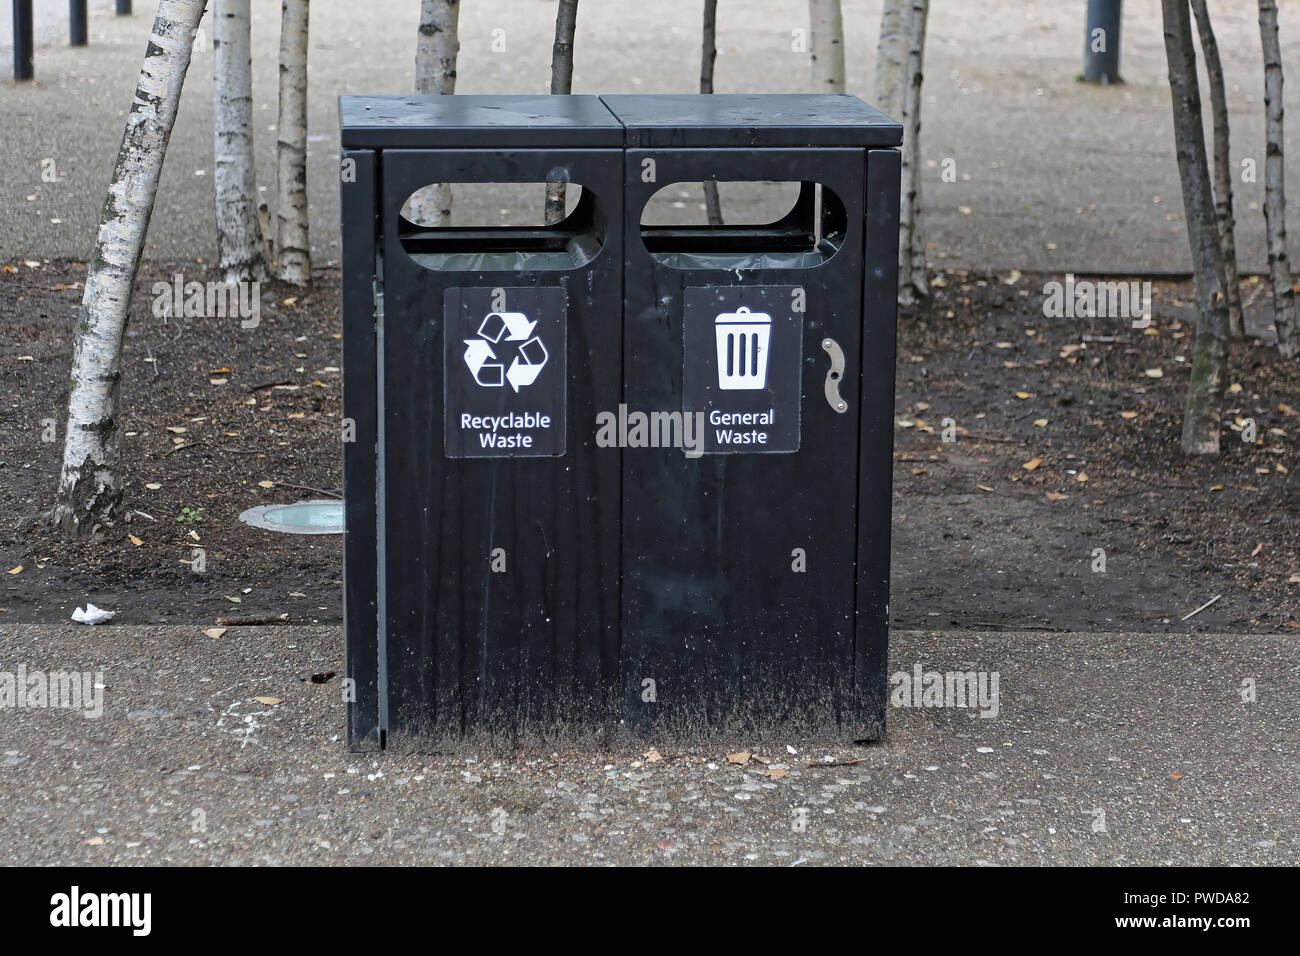 Public Black Trash Can for General Waste and Recycling - Stock Image